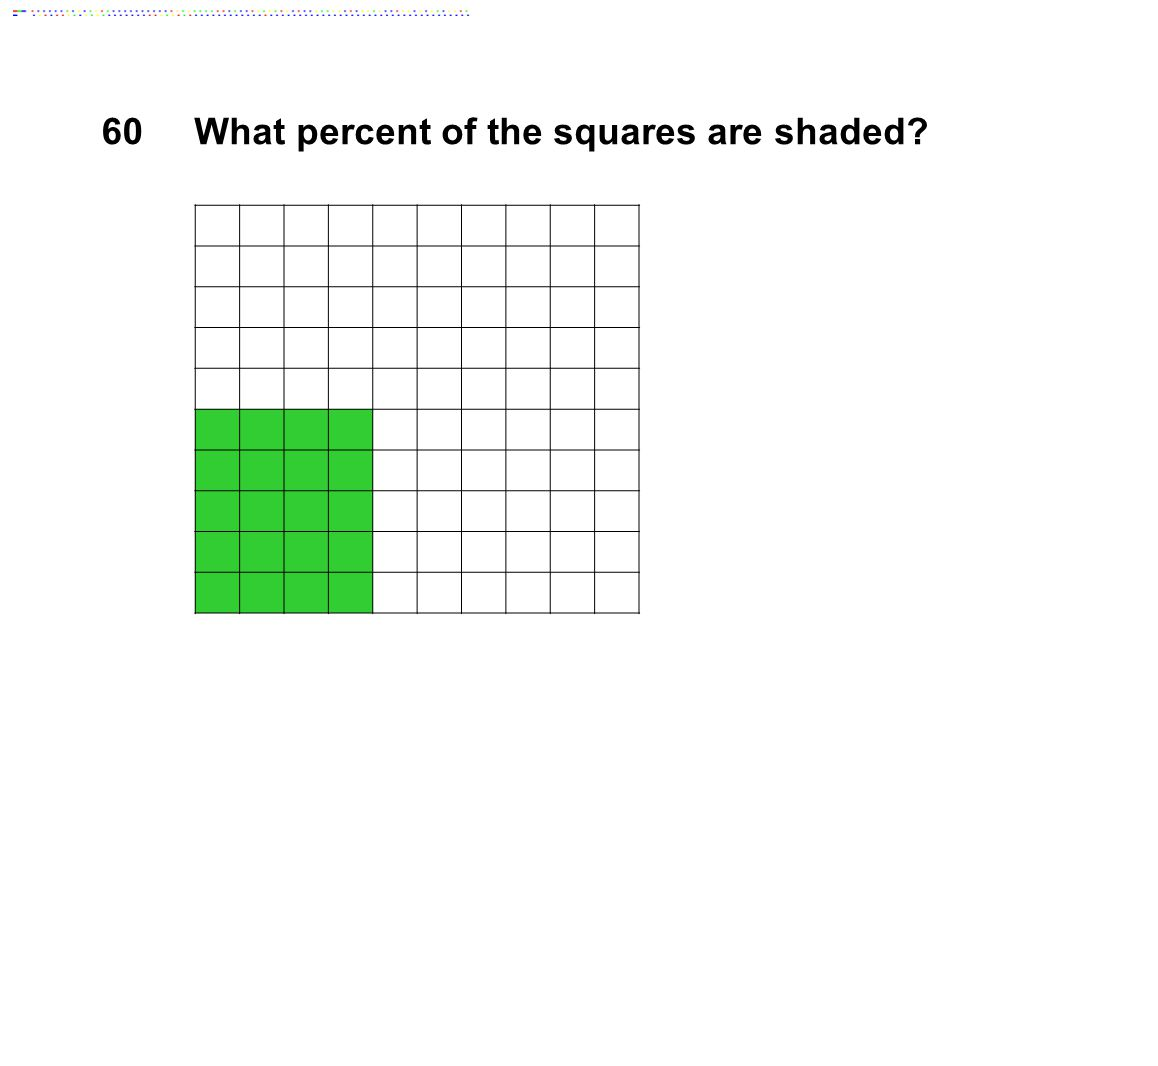 60What percent of the squares are shaded